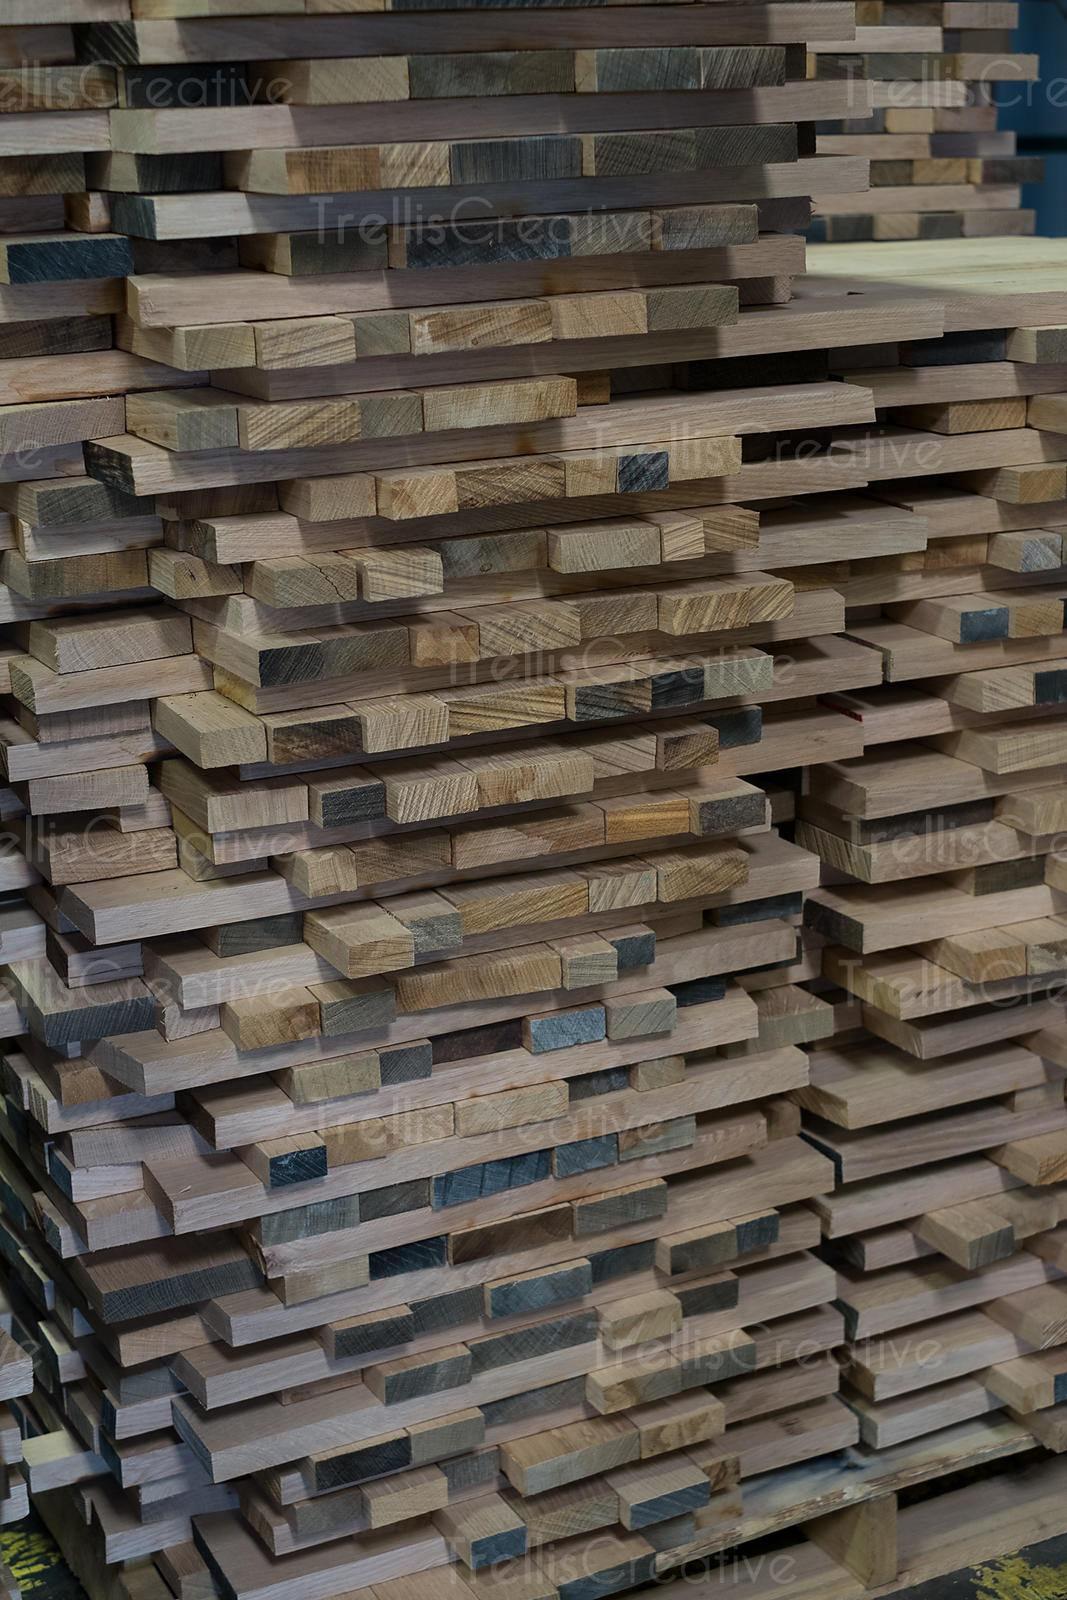 A pile of wood planks.